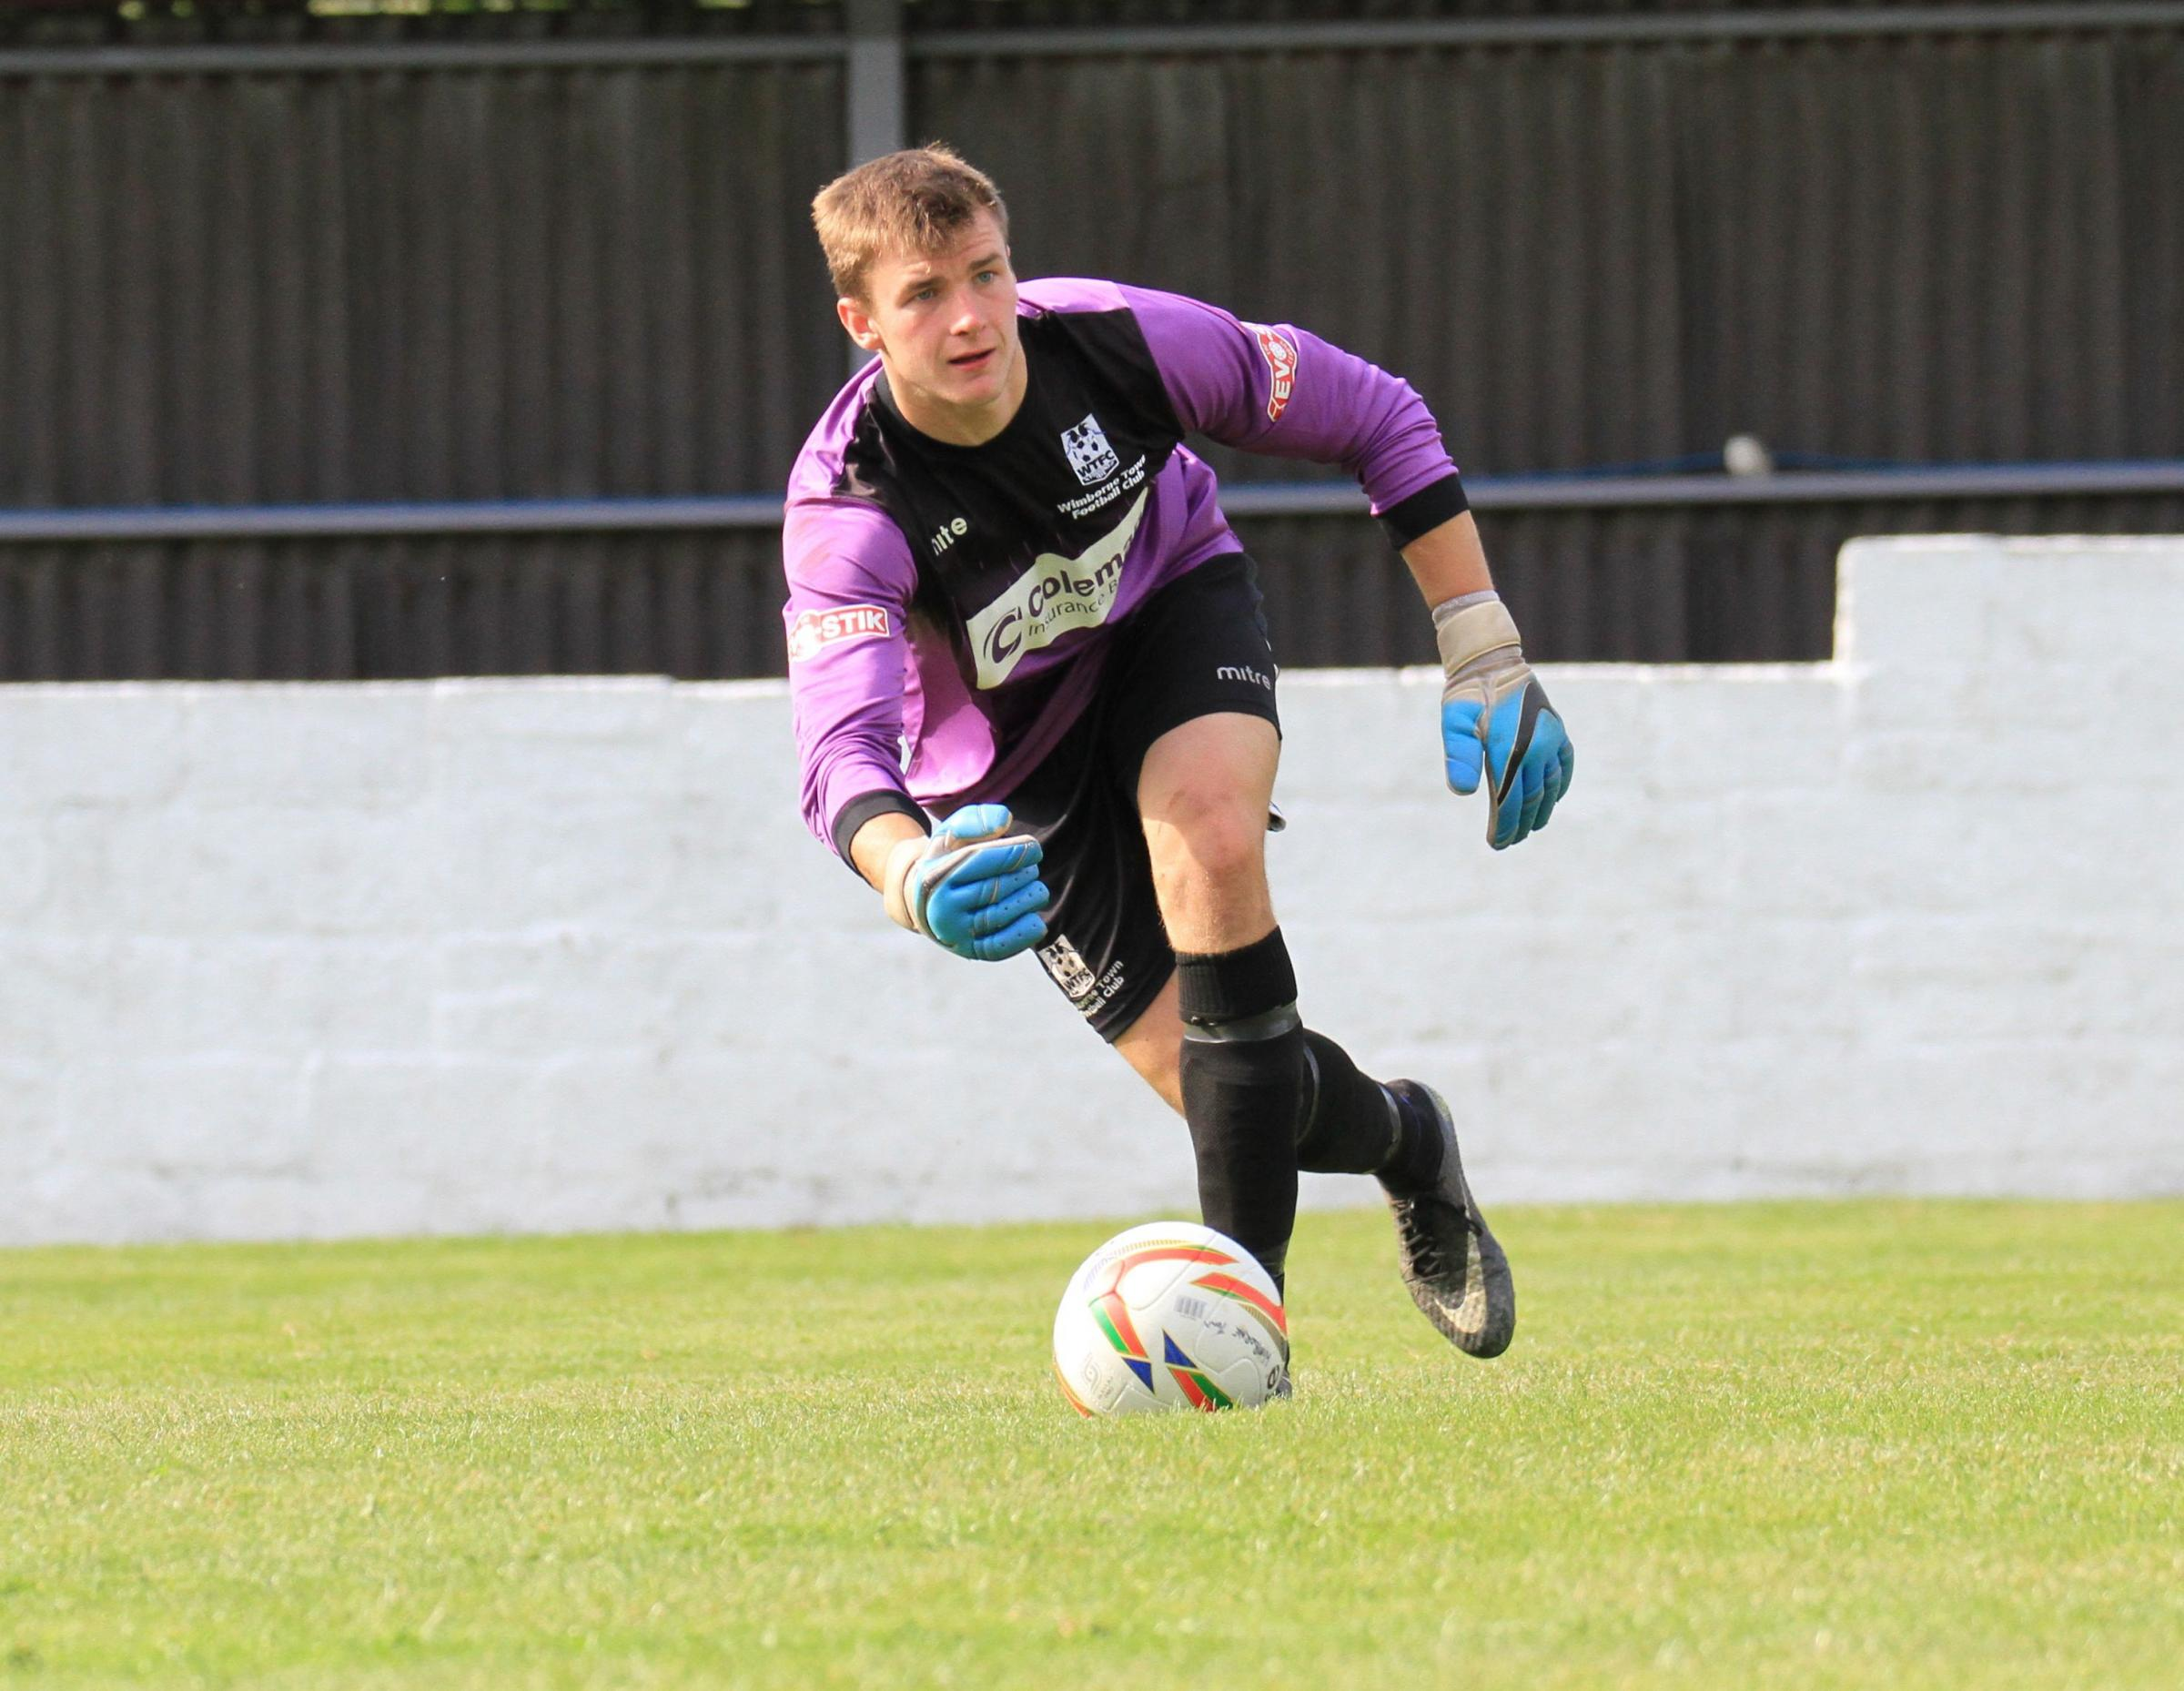 UNLIKELY SCORER: Wimborne Town goalkeeper Gerard Benfield (Picture: WTFC)